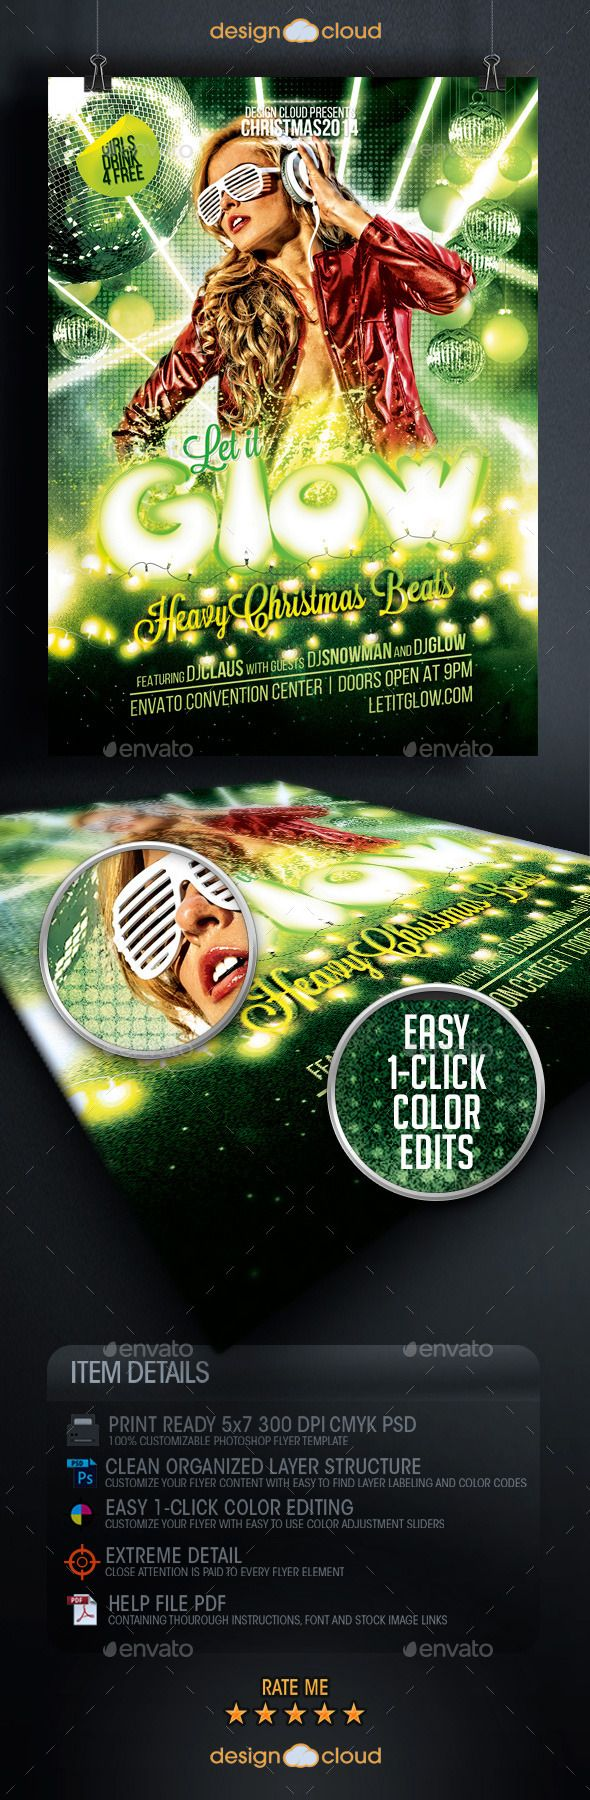 Best Cool Christmas Flyer Templates Images On